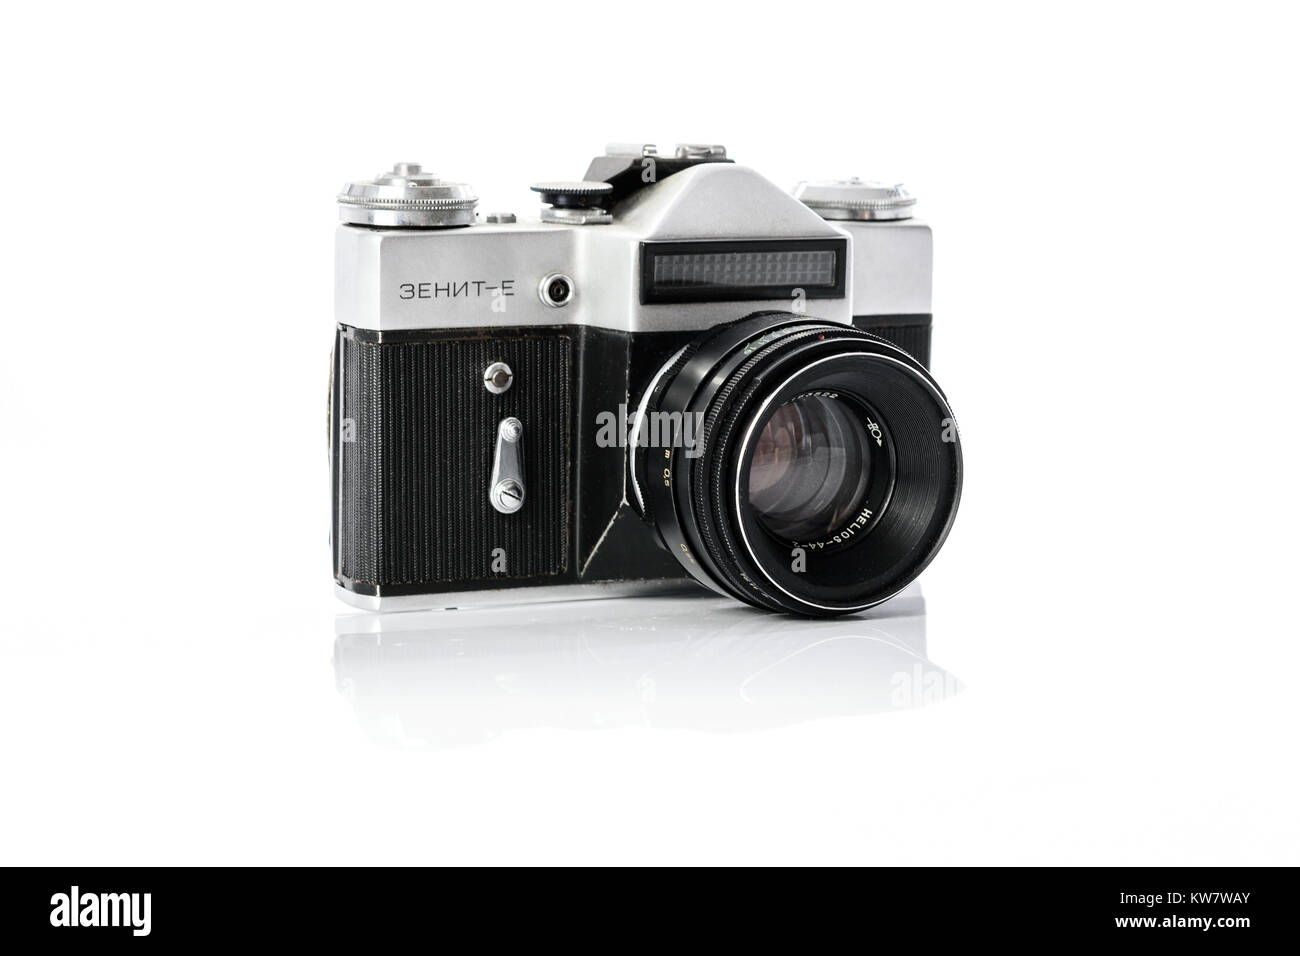 Krynica, Poland - December 29, 2017: Legendary Soviet 35 mm SLR camera Zenit-E with Helios 44mm lens isolated on - Stock Image